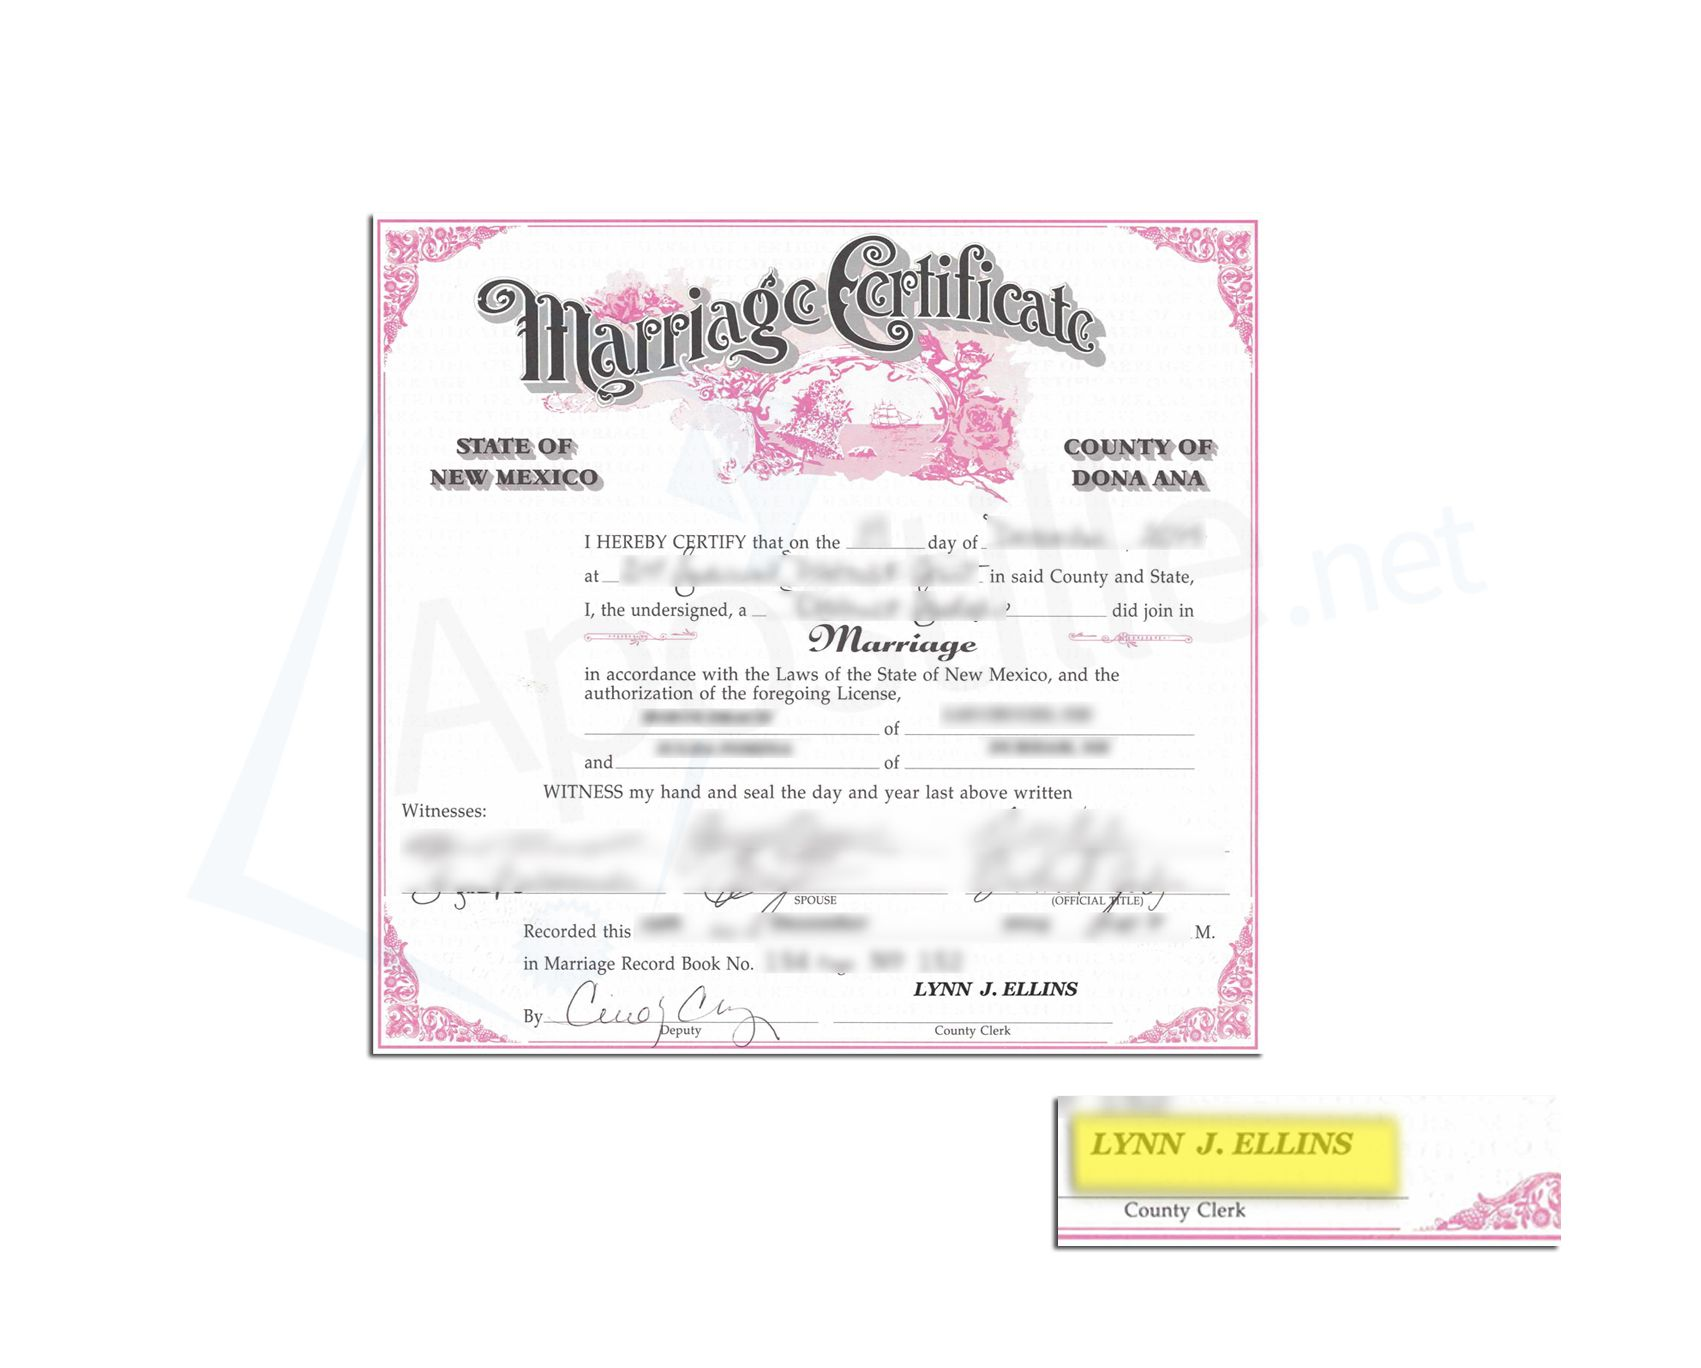 County Of Dona Ana State Of New Mexico Marriage Certificate Issued